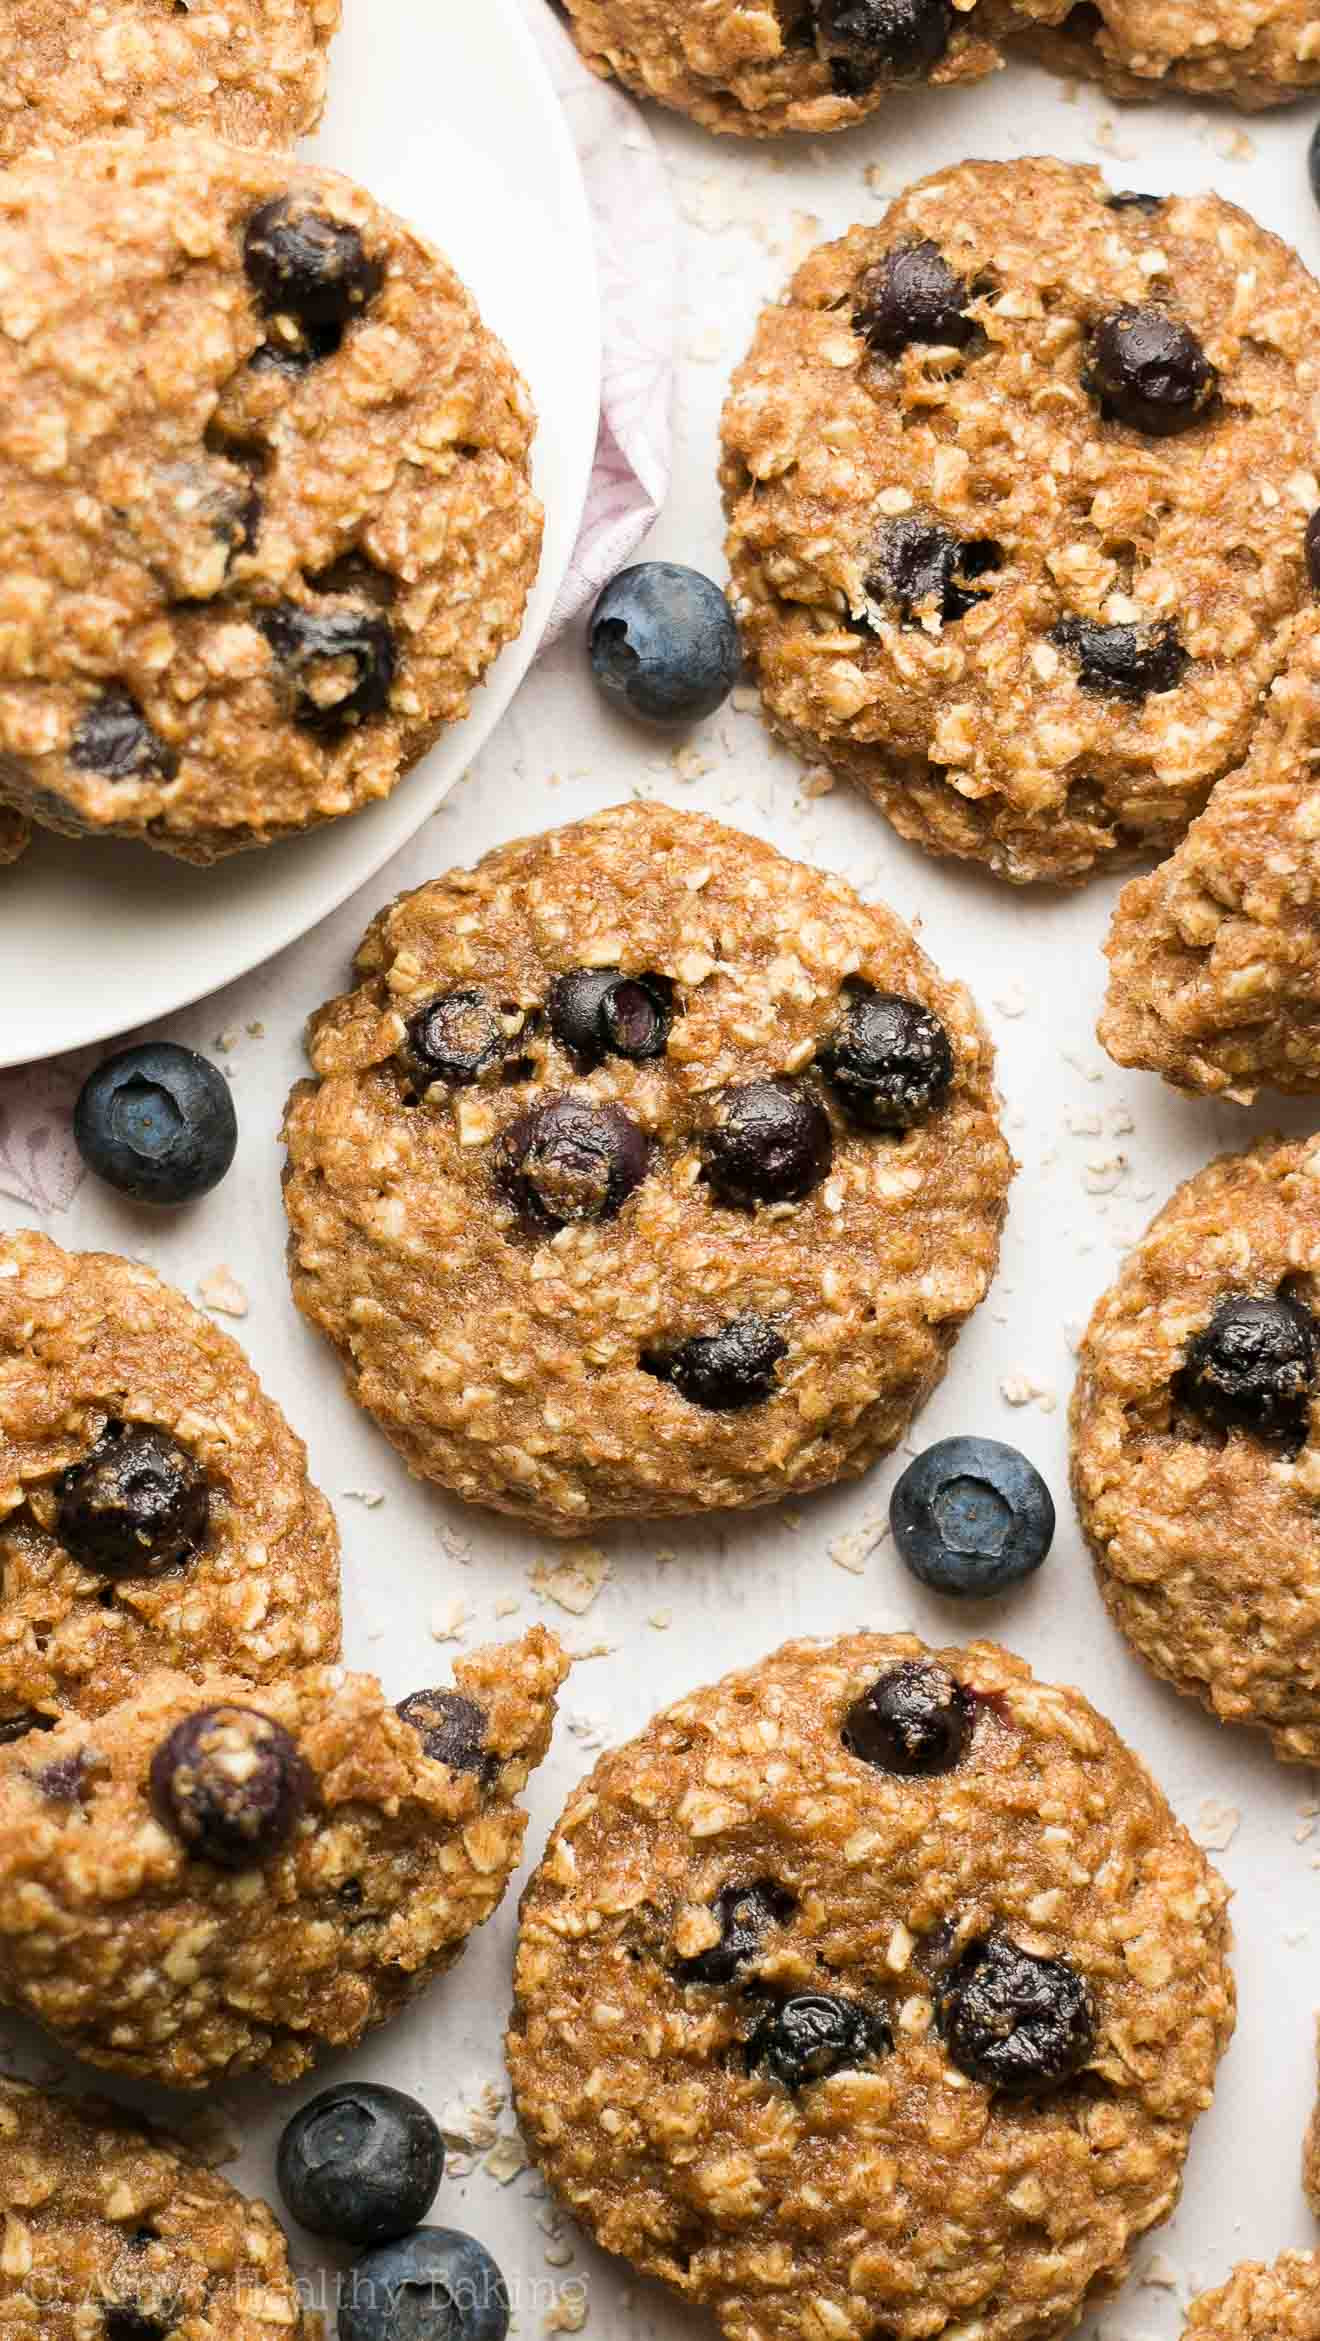 Healthy Blueberry Breakfast Recipes  Healthy Blueberry Oatmeal Breakfast Cookies